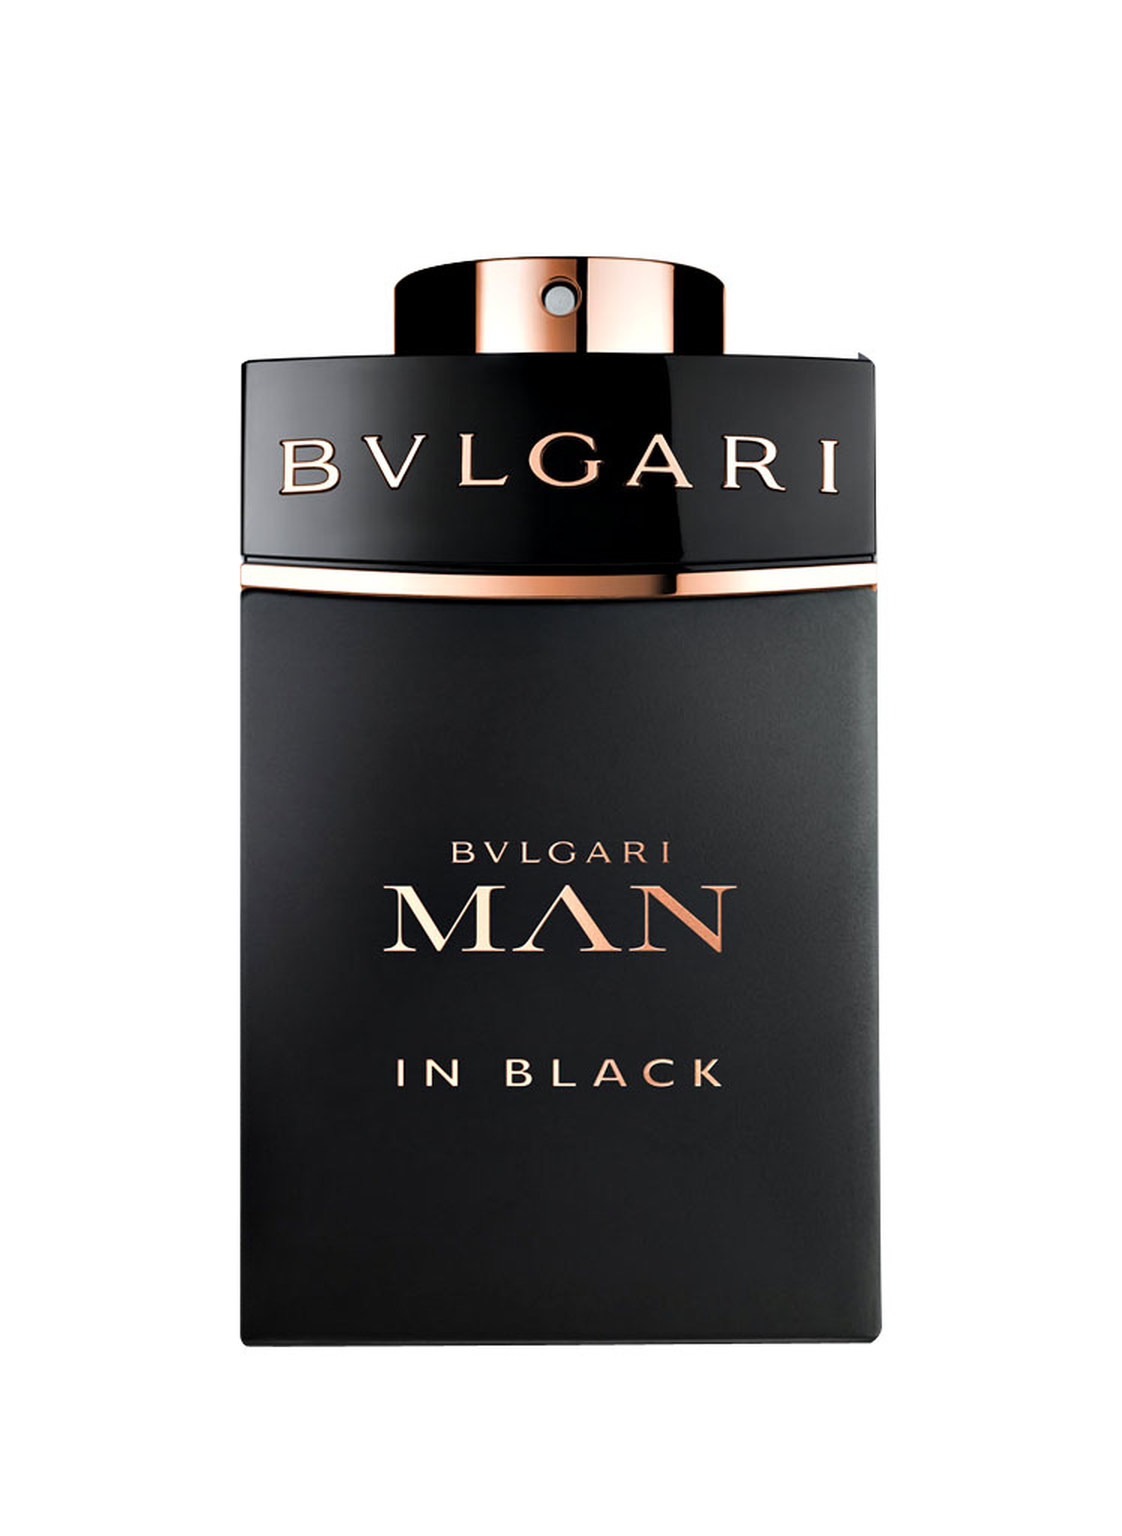 Bvlgari Man In Black Eau de Parfum 30 ml von Bvlgari